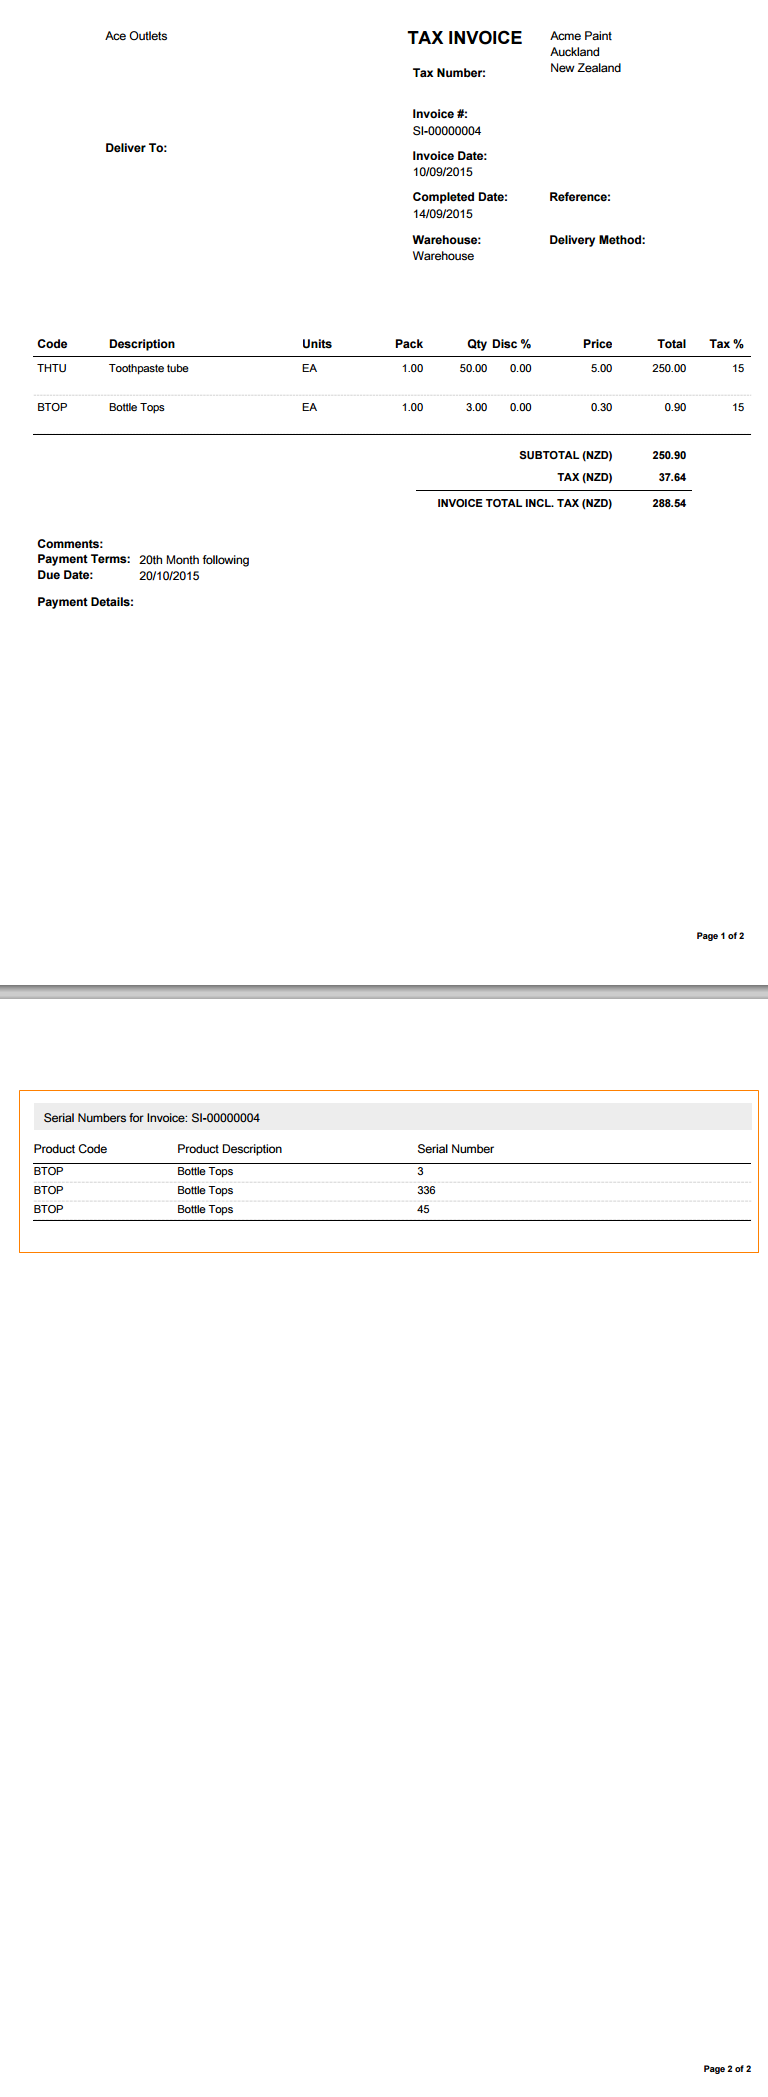 A PDF Of The Invoice Is Generated That Contains The Serial Numbers  Associated With The Invoice (screenshot)